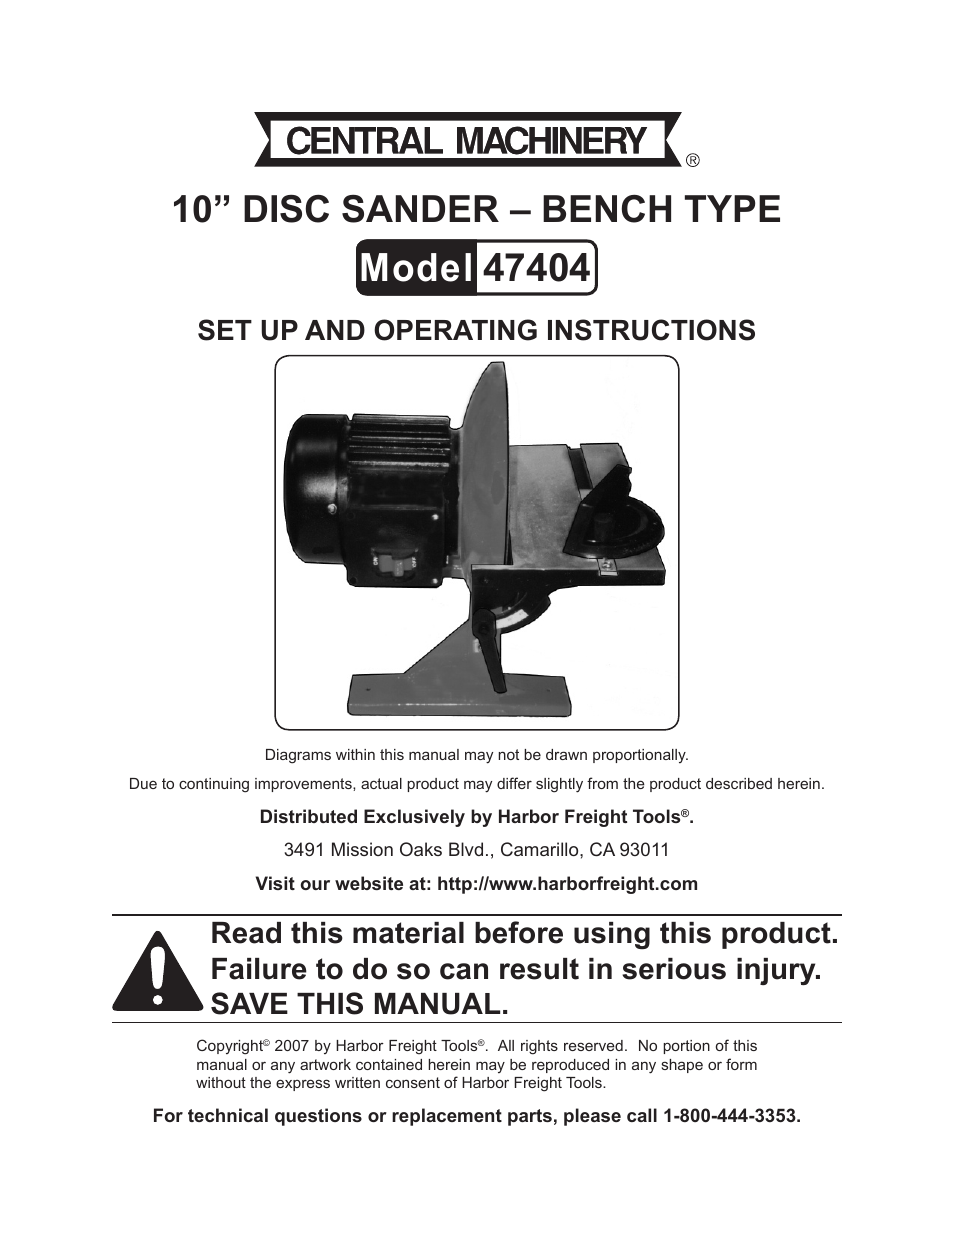 bench sander harbor freight. central machinery manuals harbor freight tools 10 disc sander bench type